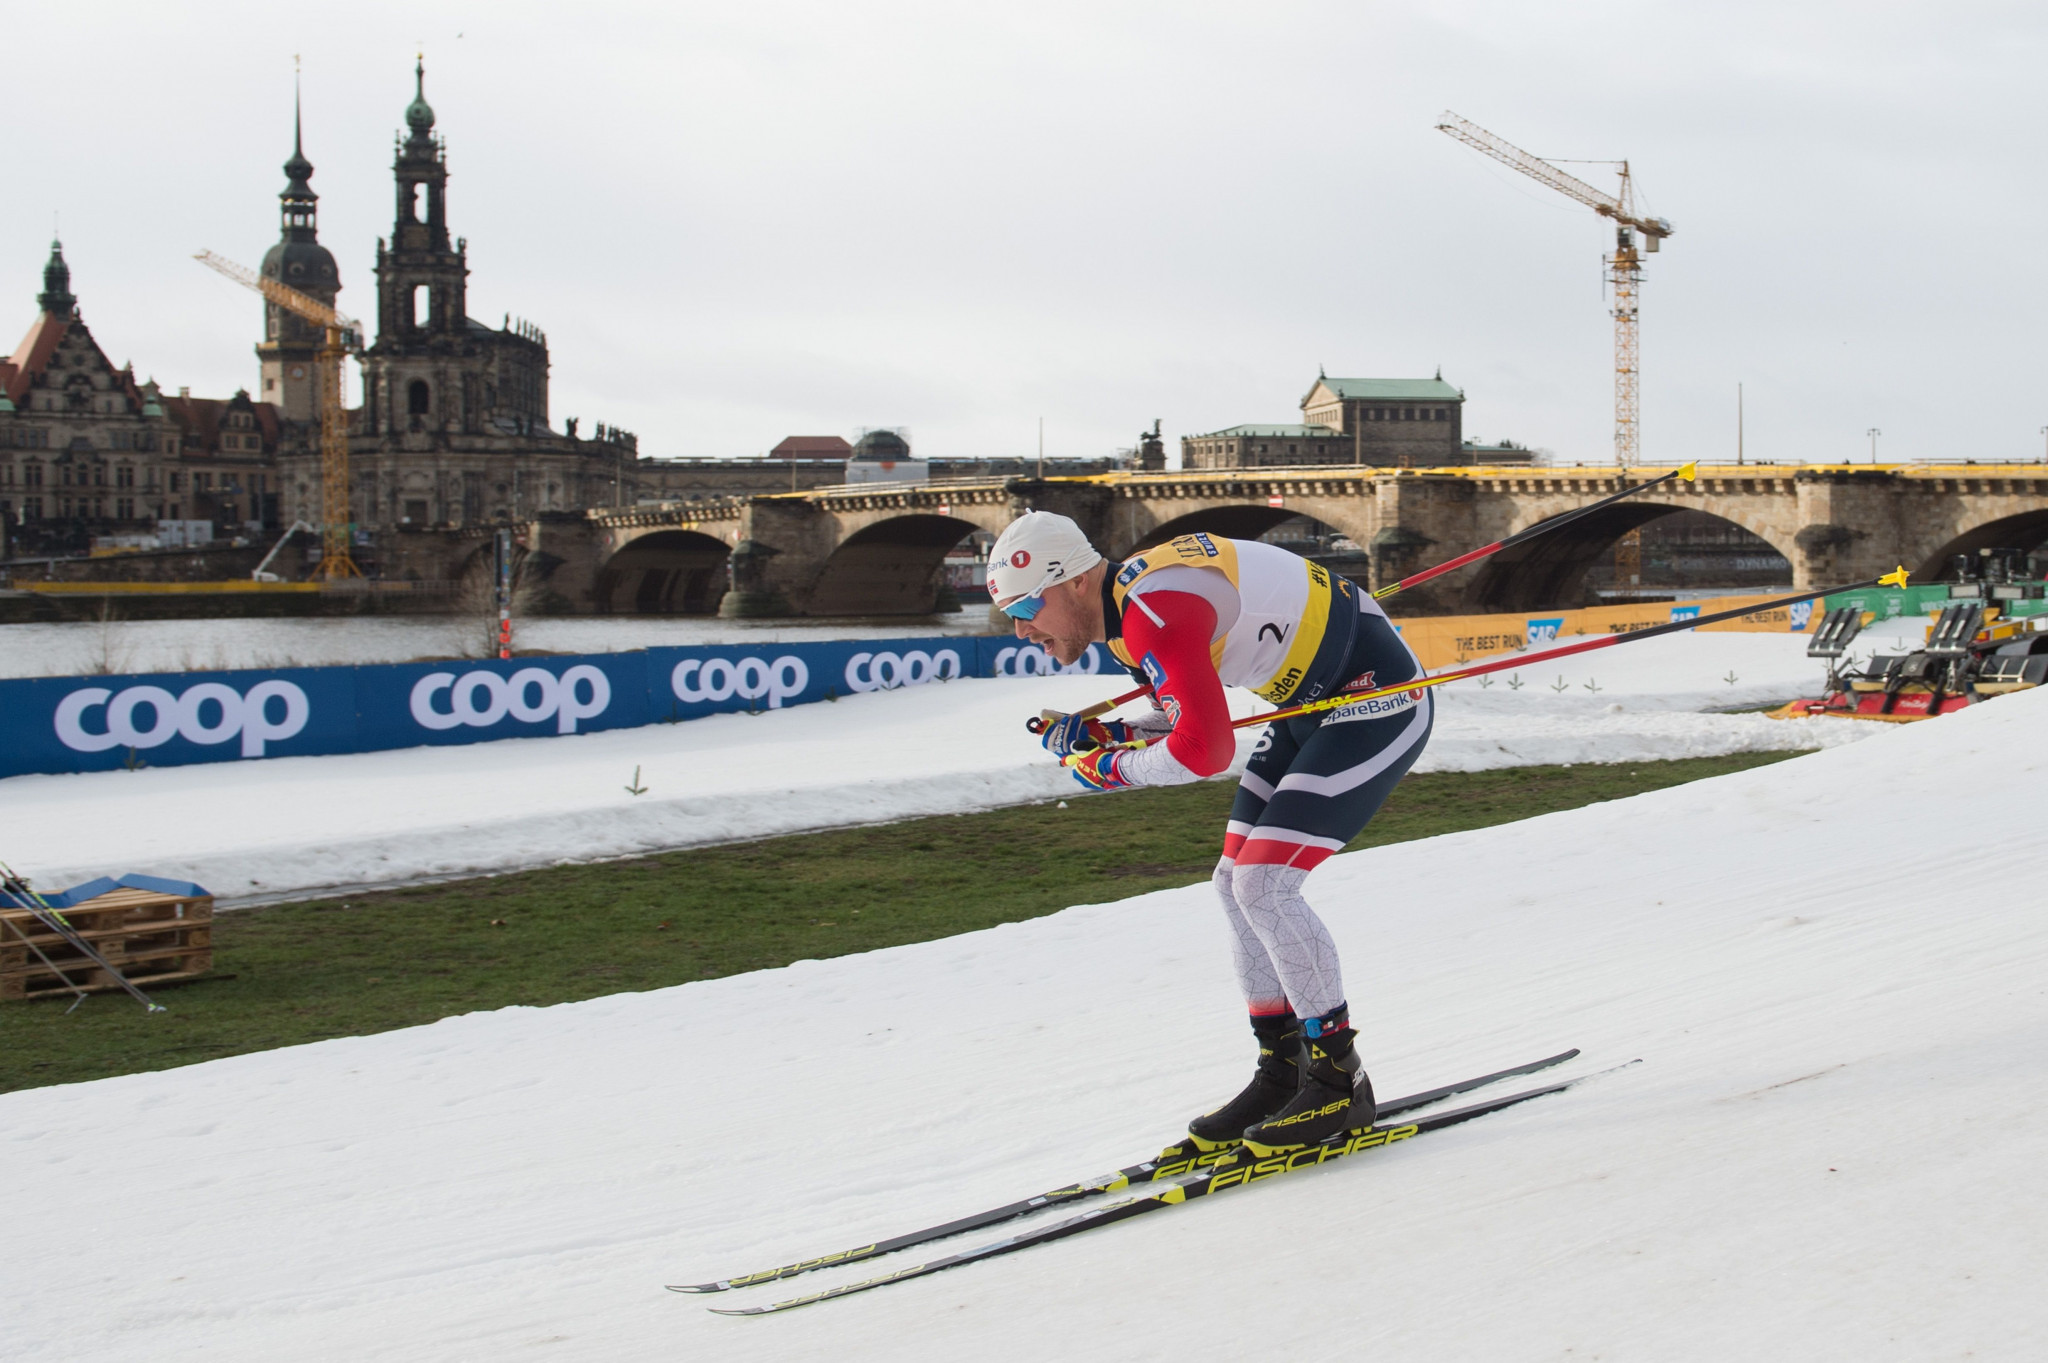 Altenberg and Dresden to host joint FIS and World Para World Cup